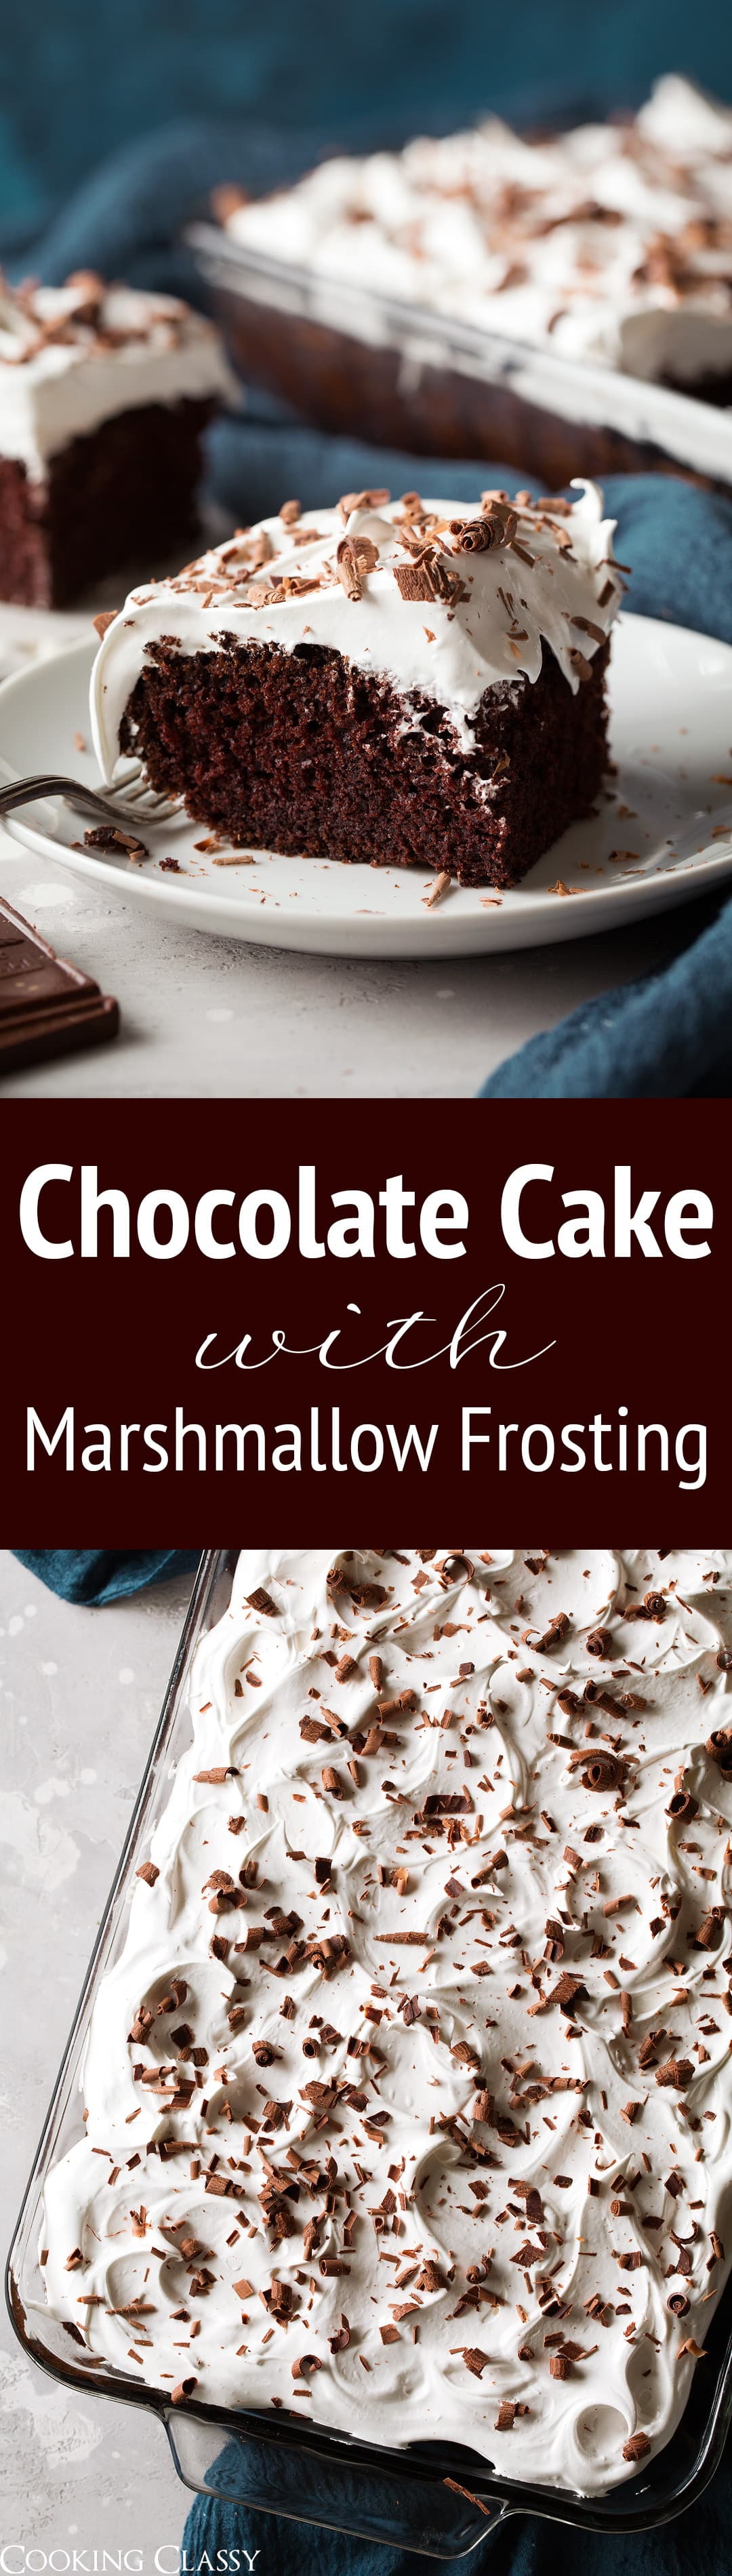 Chocolate Cake with Marshmallow Frosting - Rich and chocolatey cake topped with a light as air marshmallow frosting - that tastes like melted marshmallows! Such an irresistible cake and flavor combination! #chocolate #cake #dessert #christmas